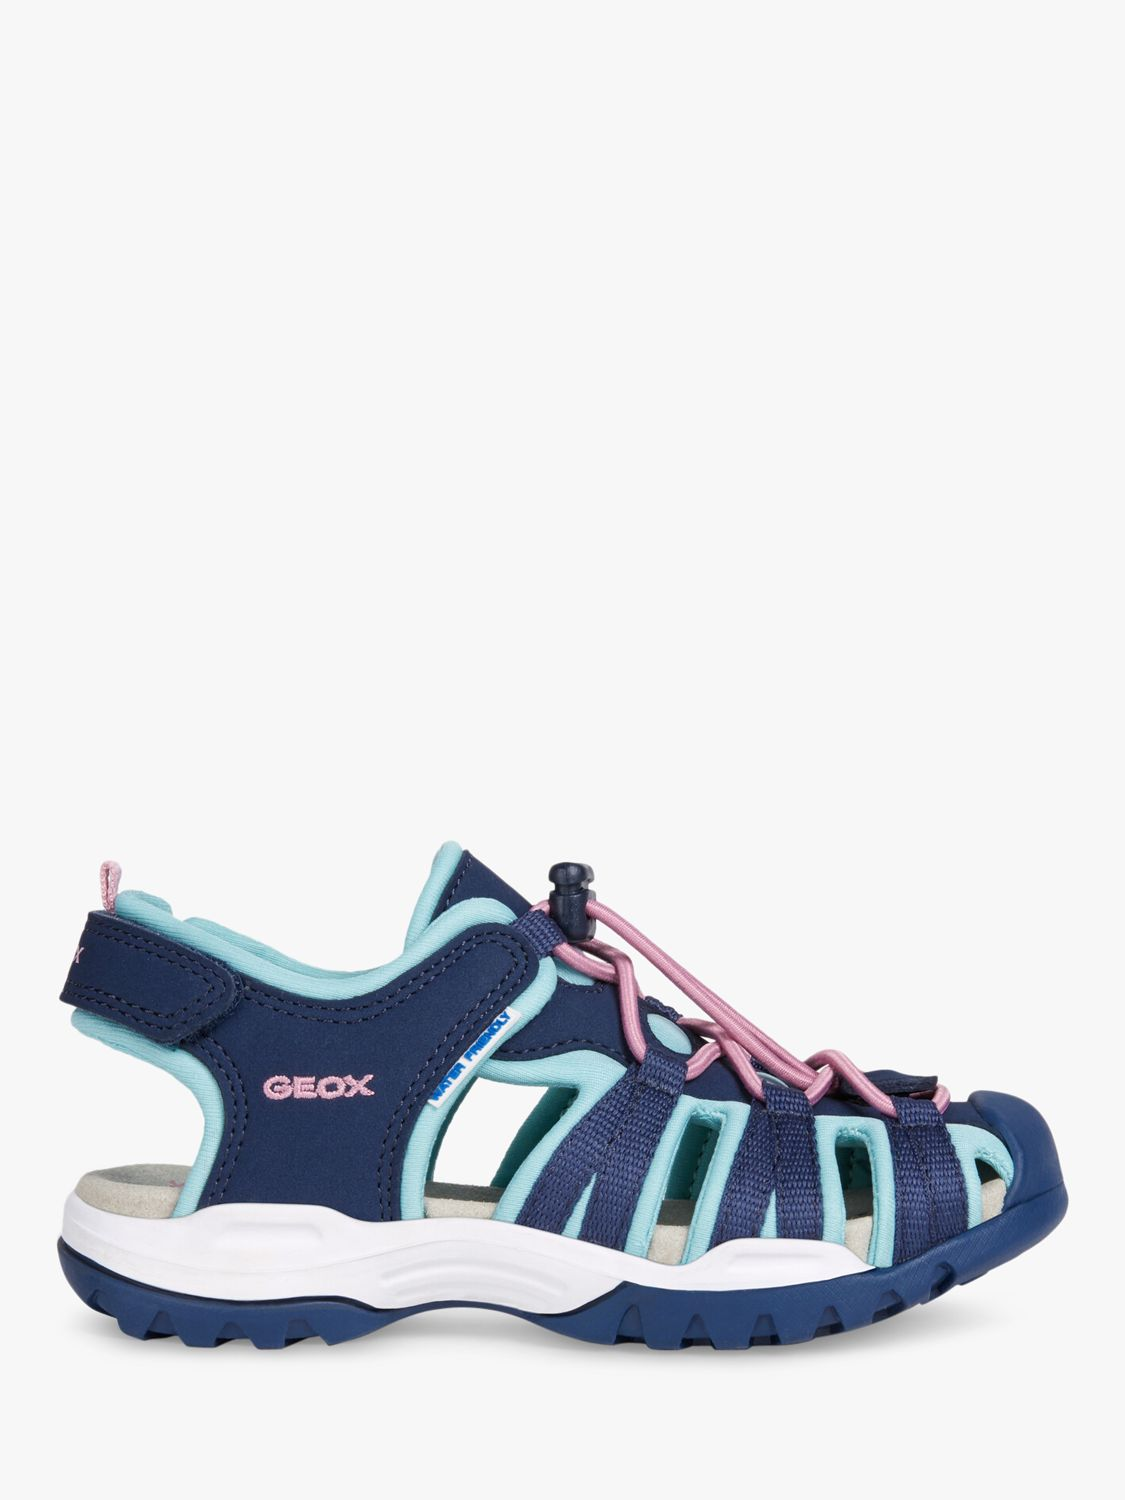 Geox Geox Children's Borealis Sandals, Navy/Aqua